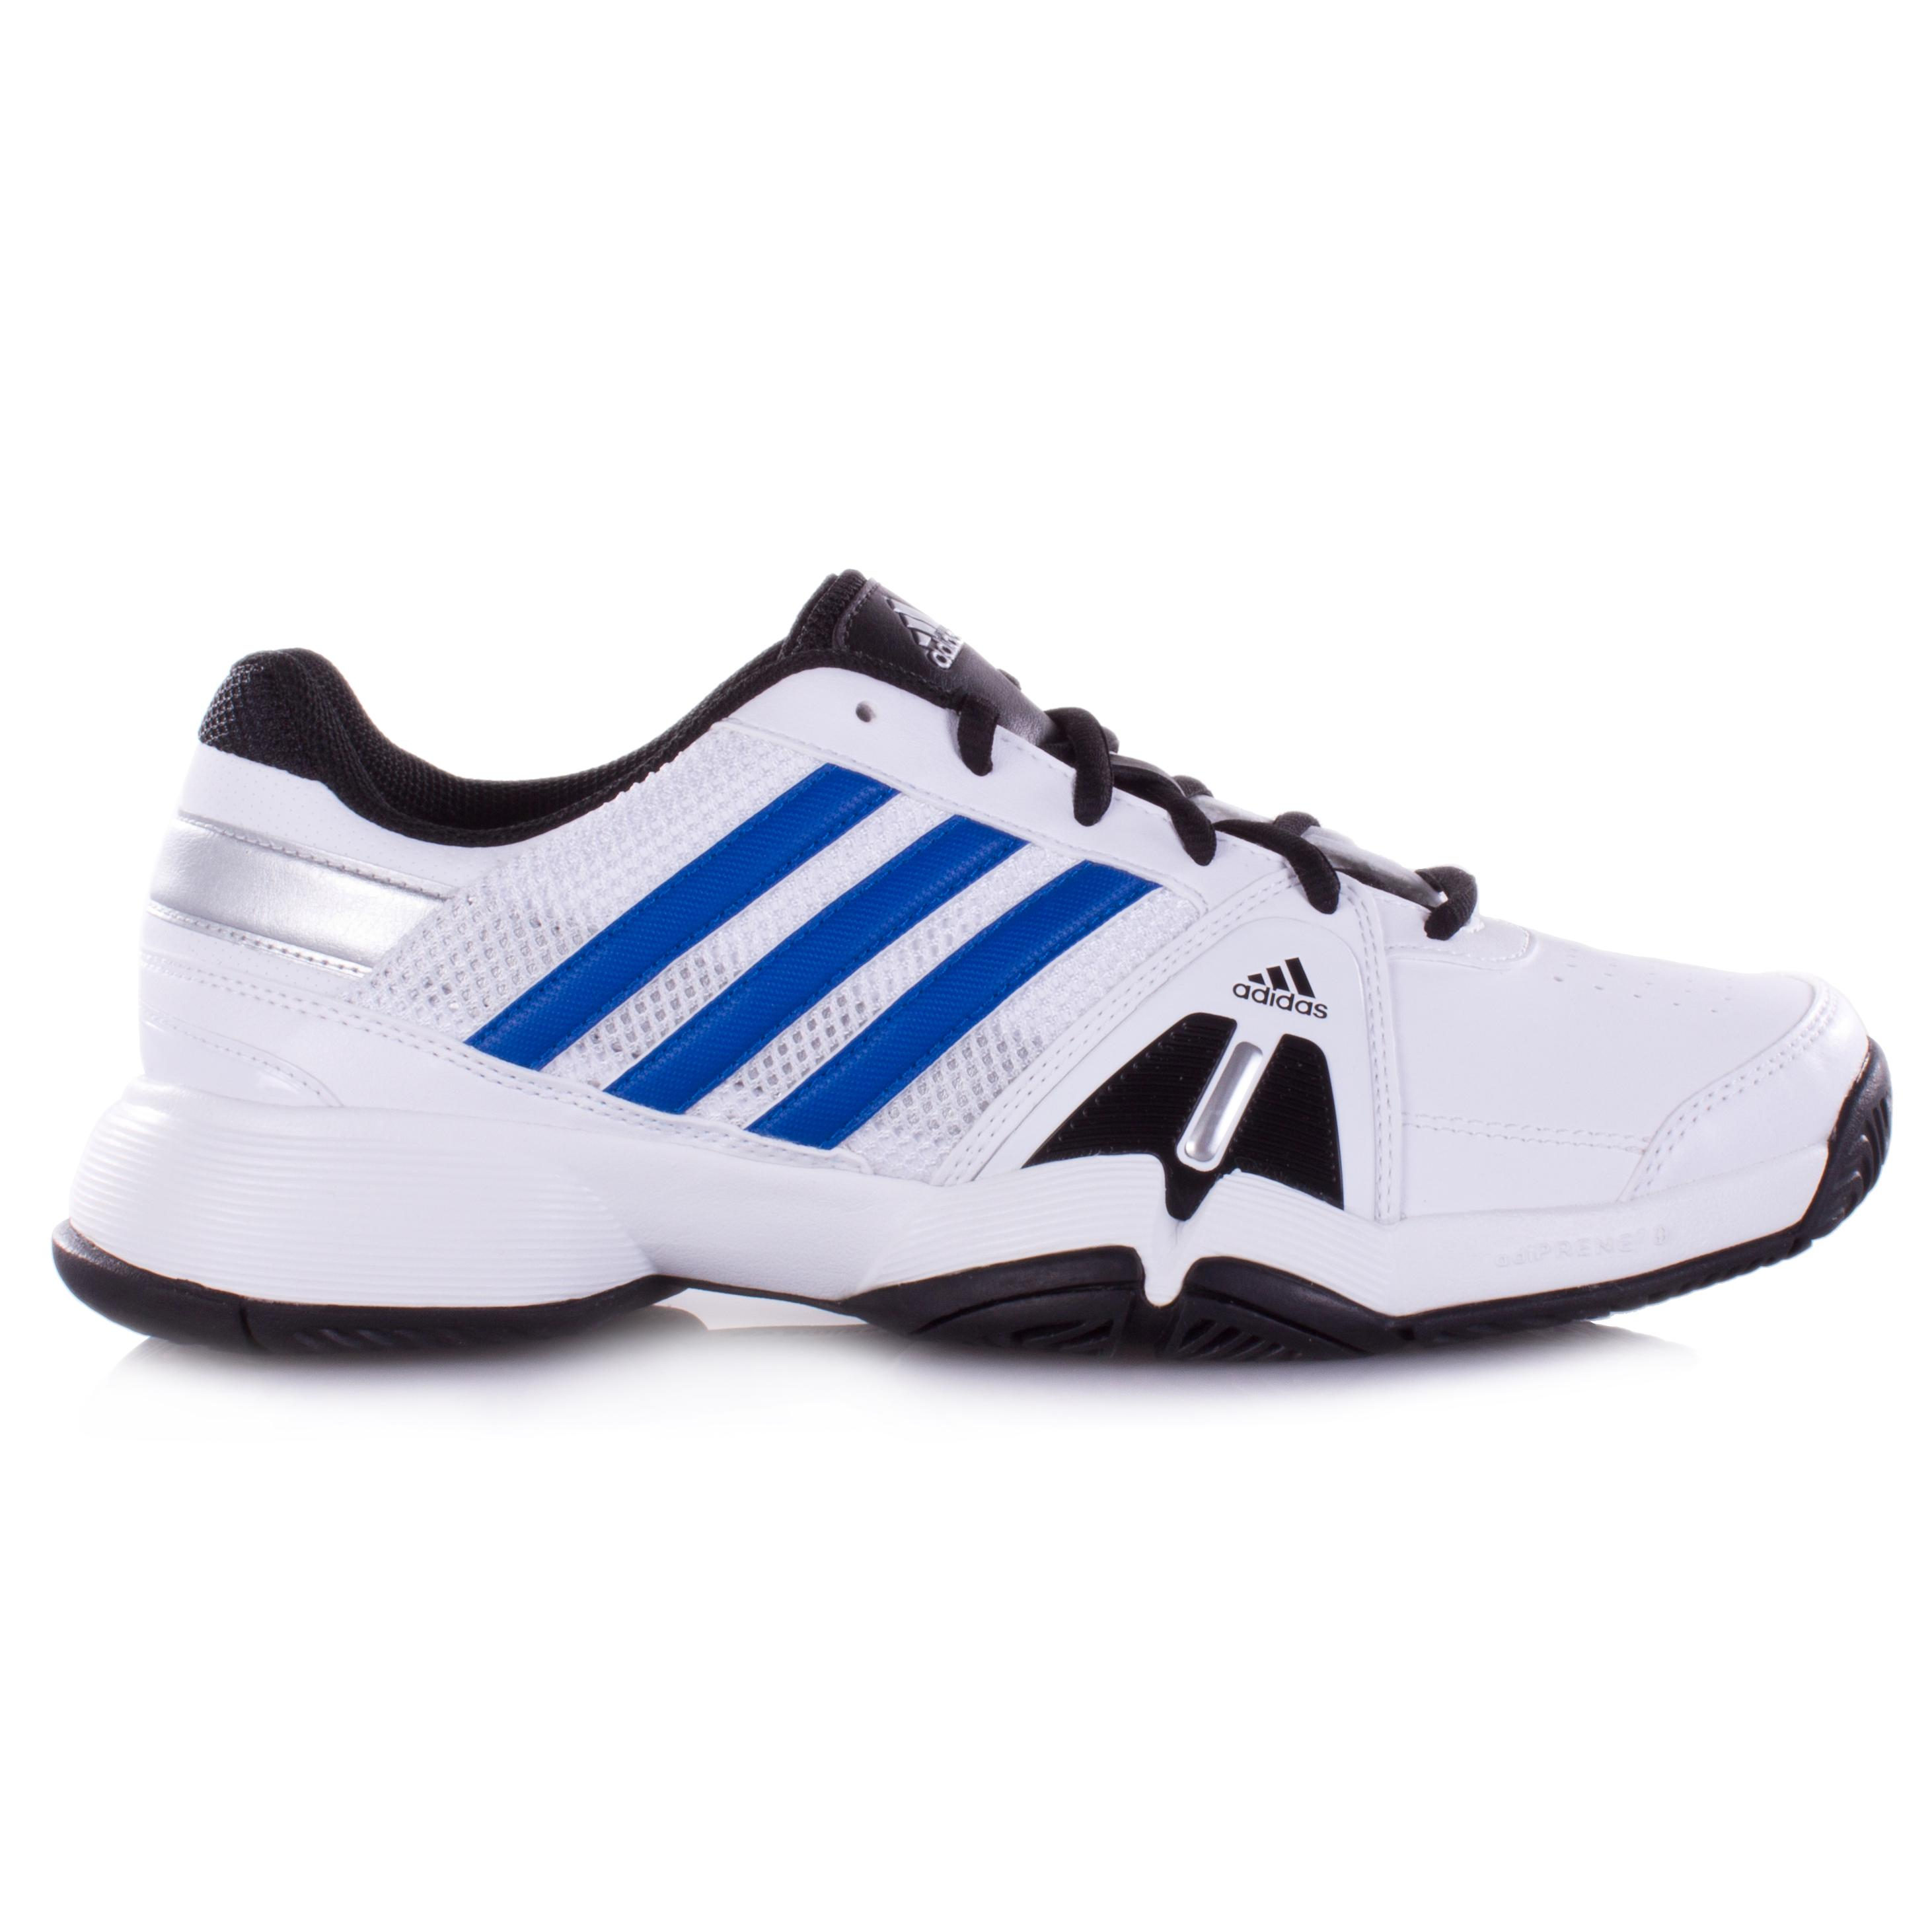 Mens Adidas Court Shoes